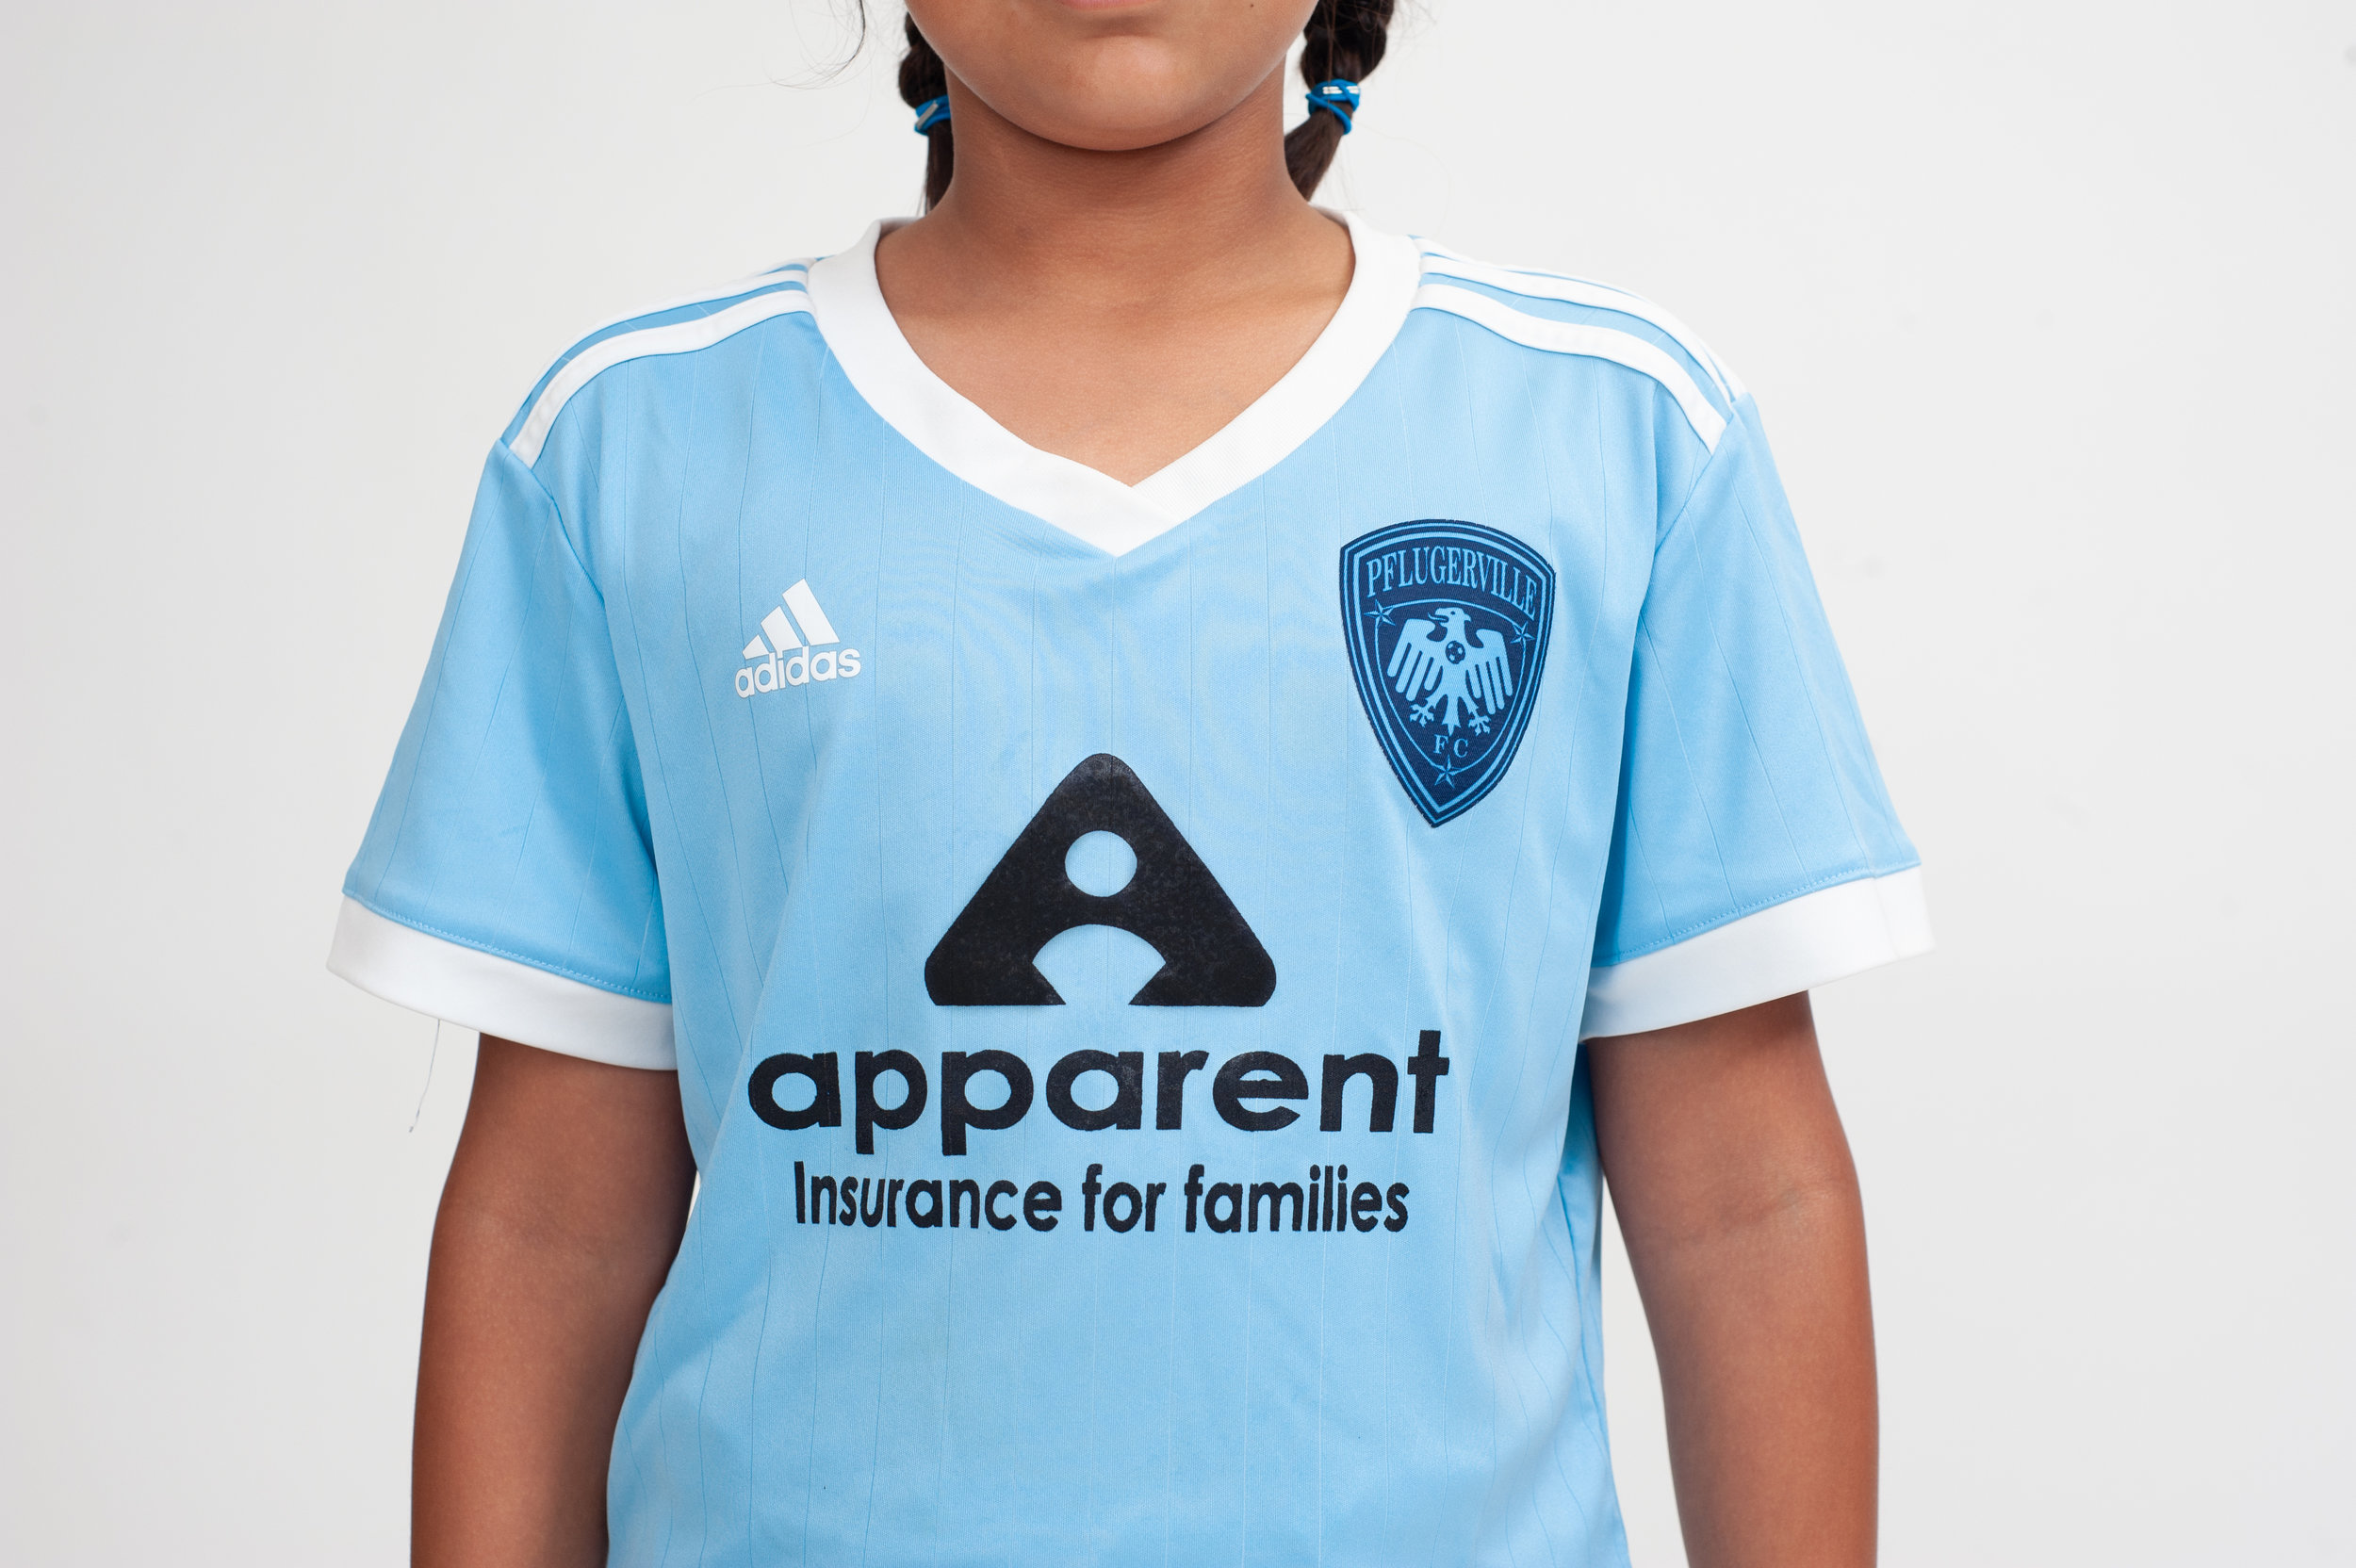 Team Sponsorships - Sponsor a Pflugerville FC Academy or Select team with your brand's logo featured on the jersey.